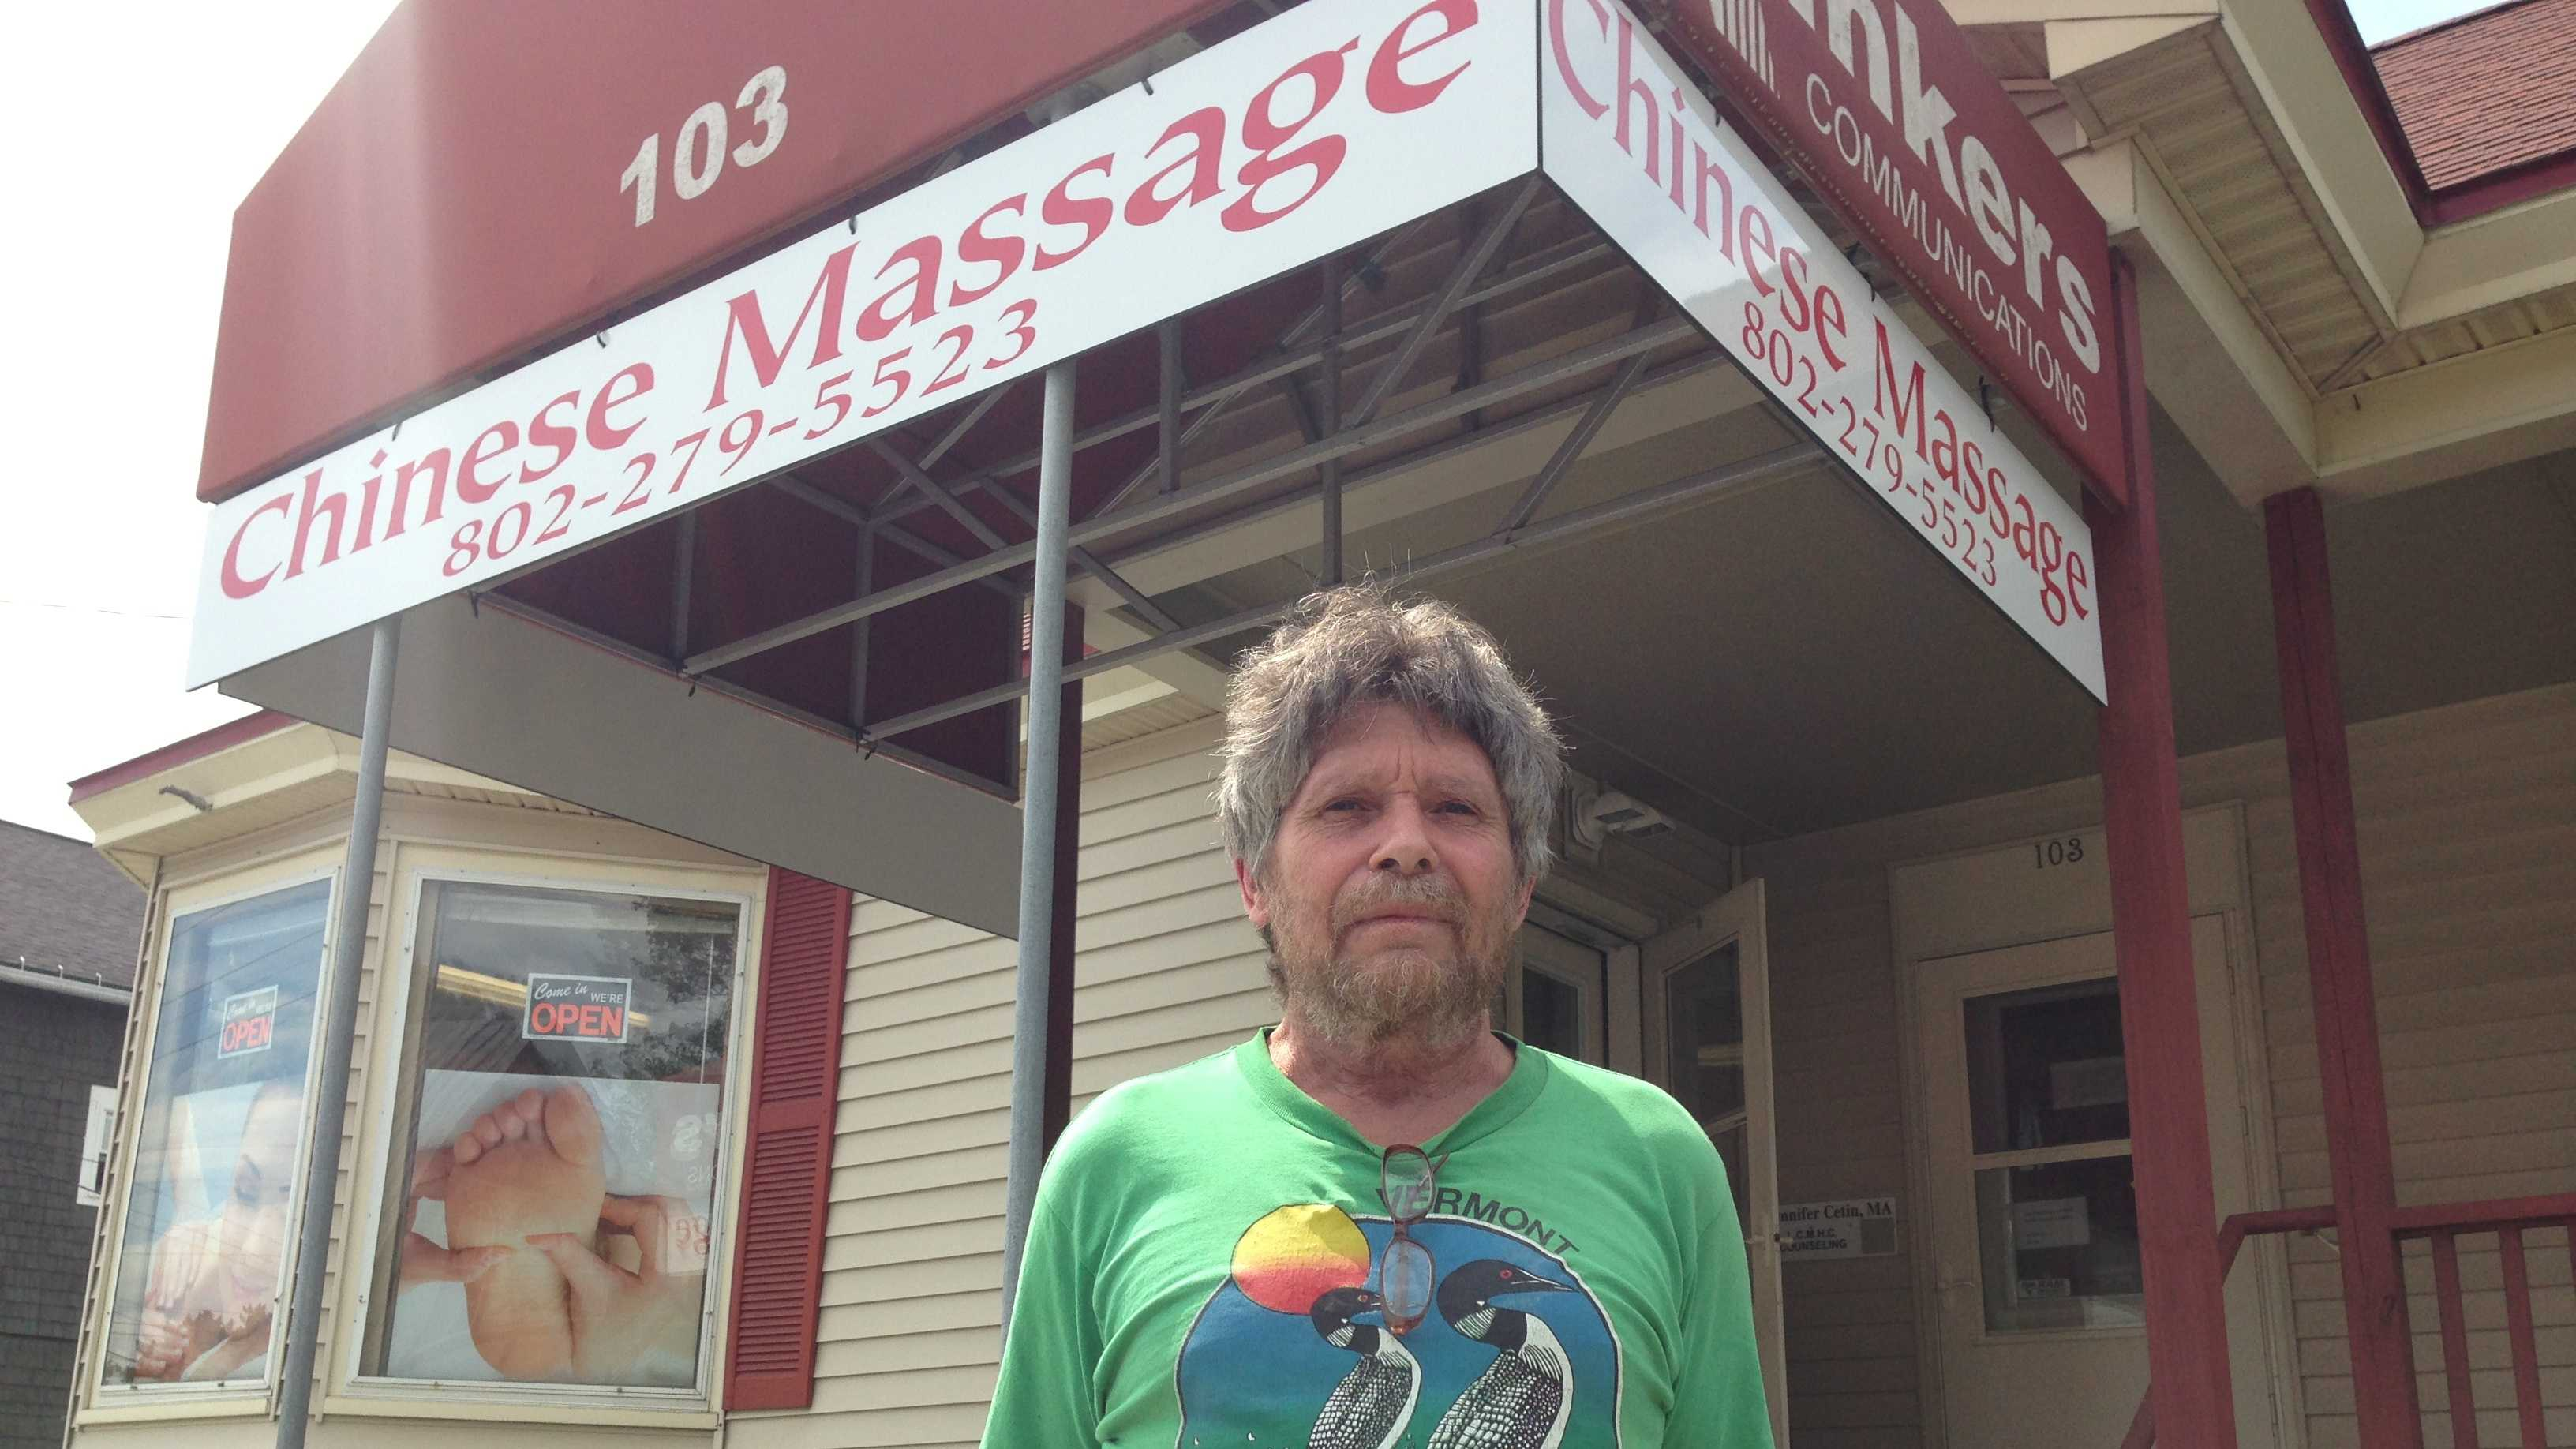 Barre Mayor Drops Massage Regulation - img